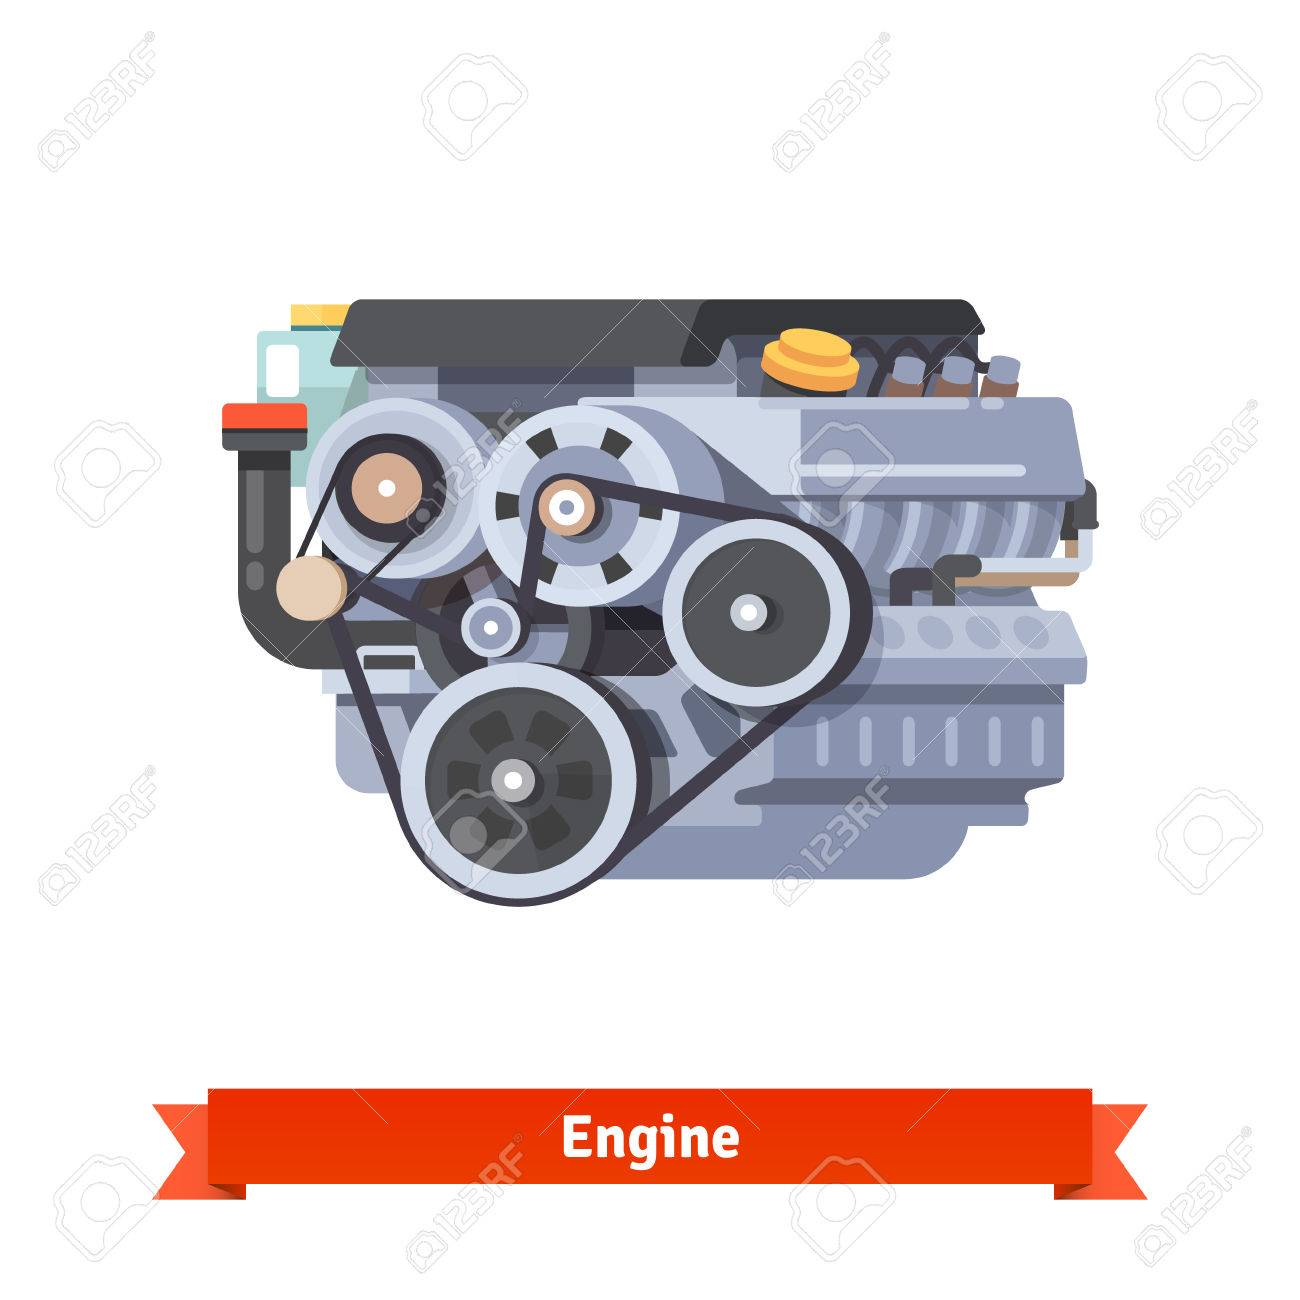 59 445 Car Engine Stock Vector Illustration And Royalty Free Car